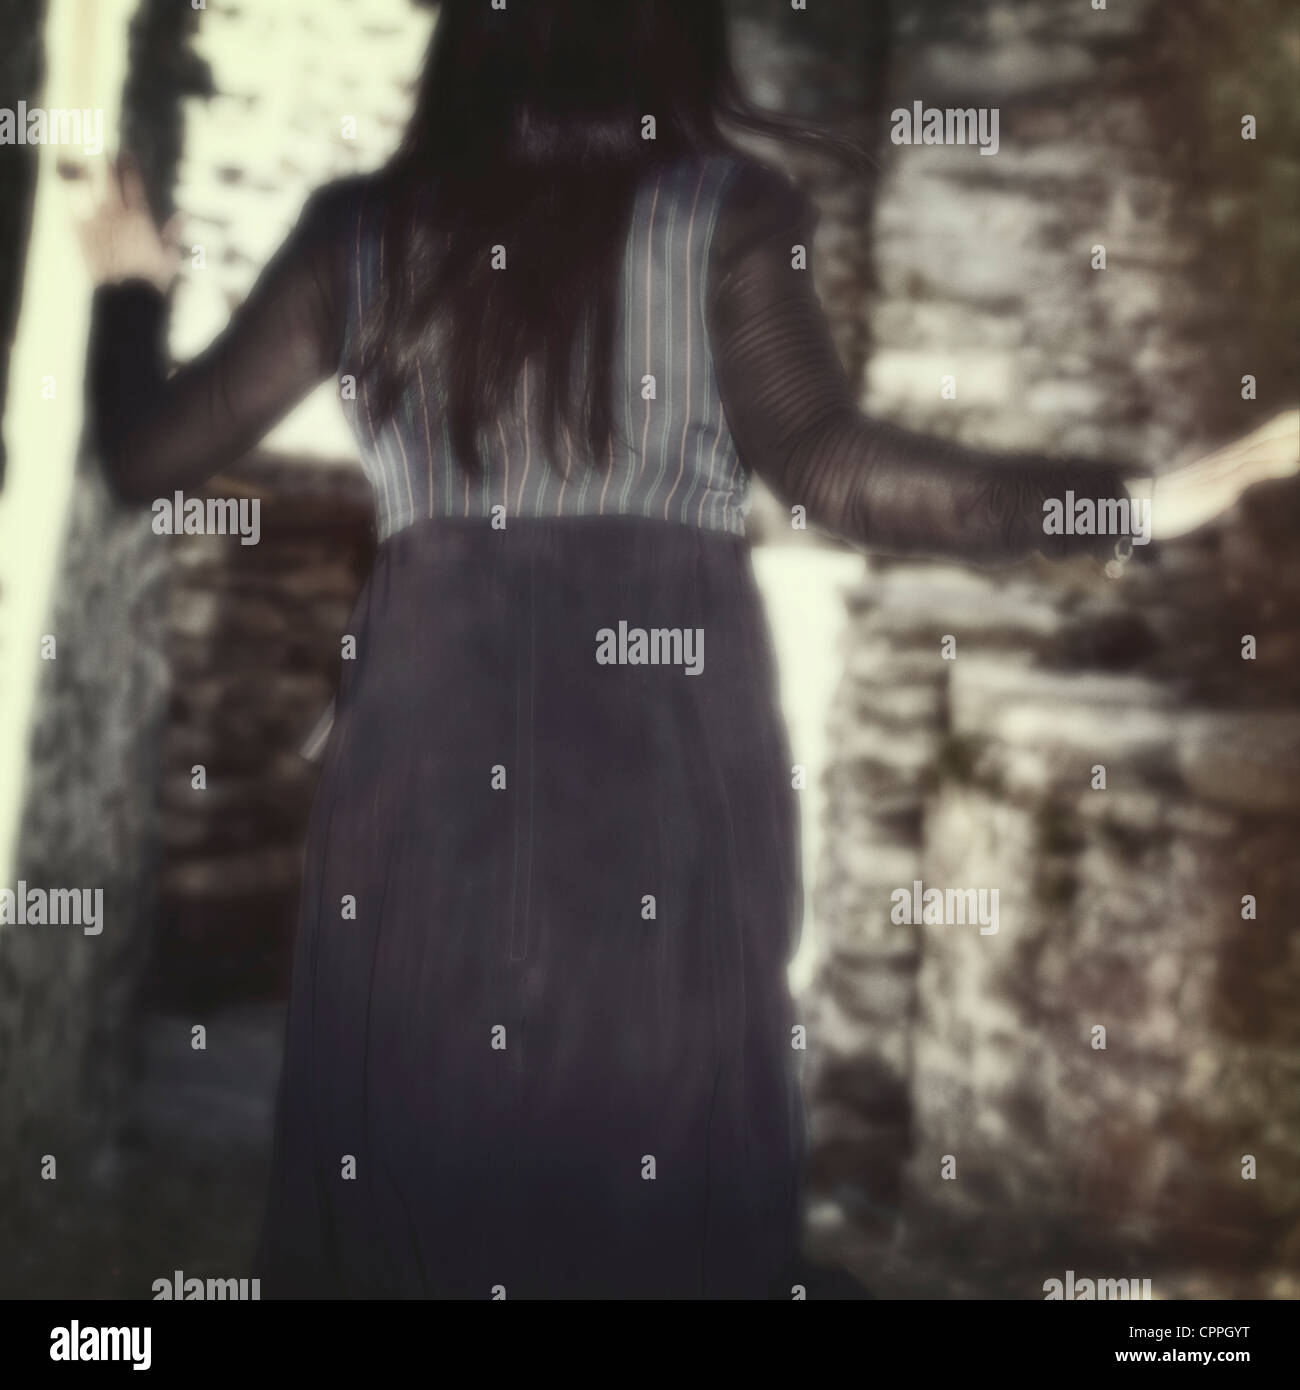 young woman is trying to escape and runs into a narrow alley - Stock Image